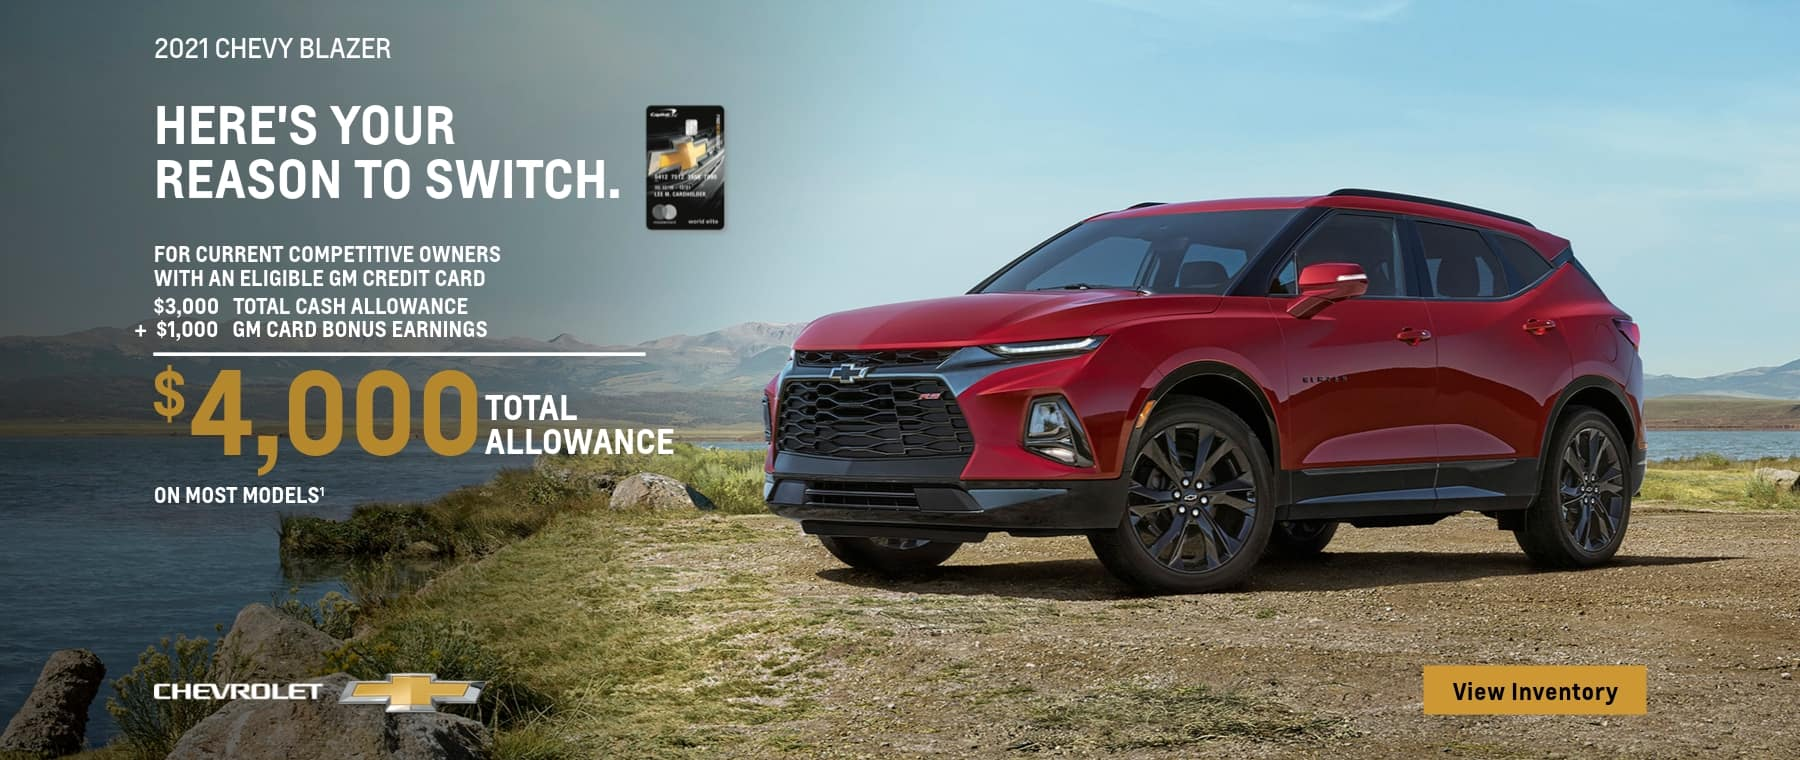 2021 chevy blazer for current competitive owners with an eligible gm credit card $3,000 total cash allowance + $1,000 gm card bonus earnings chevrolet $4,000: total allowance view inventory on most models